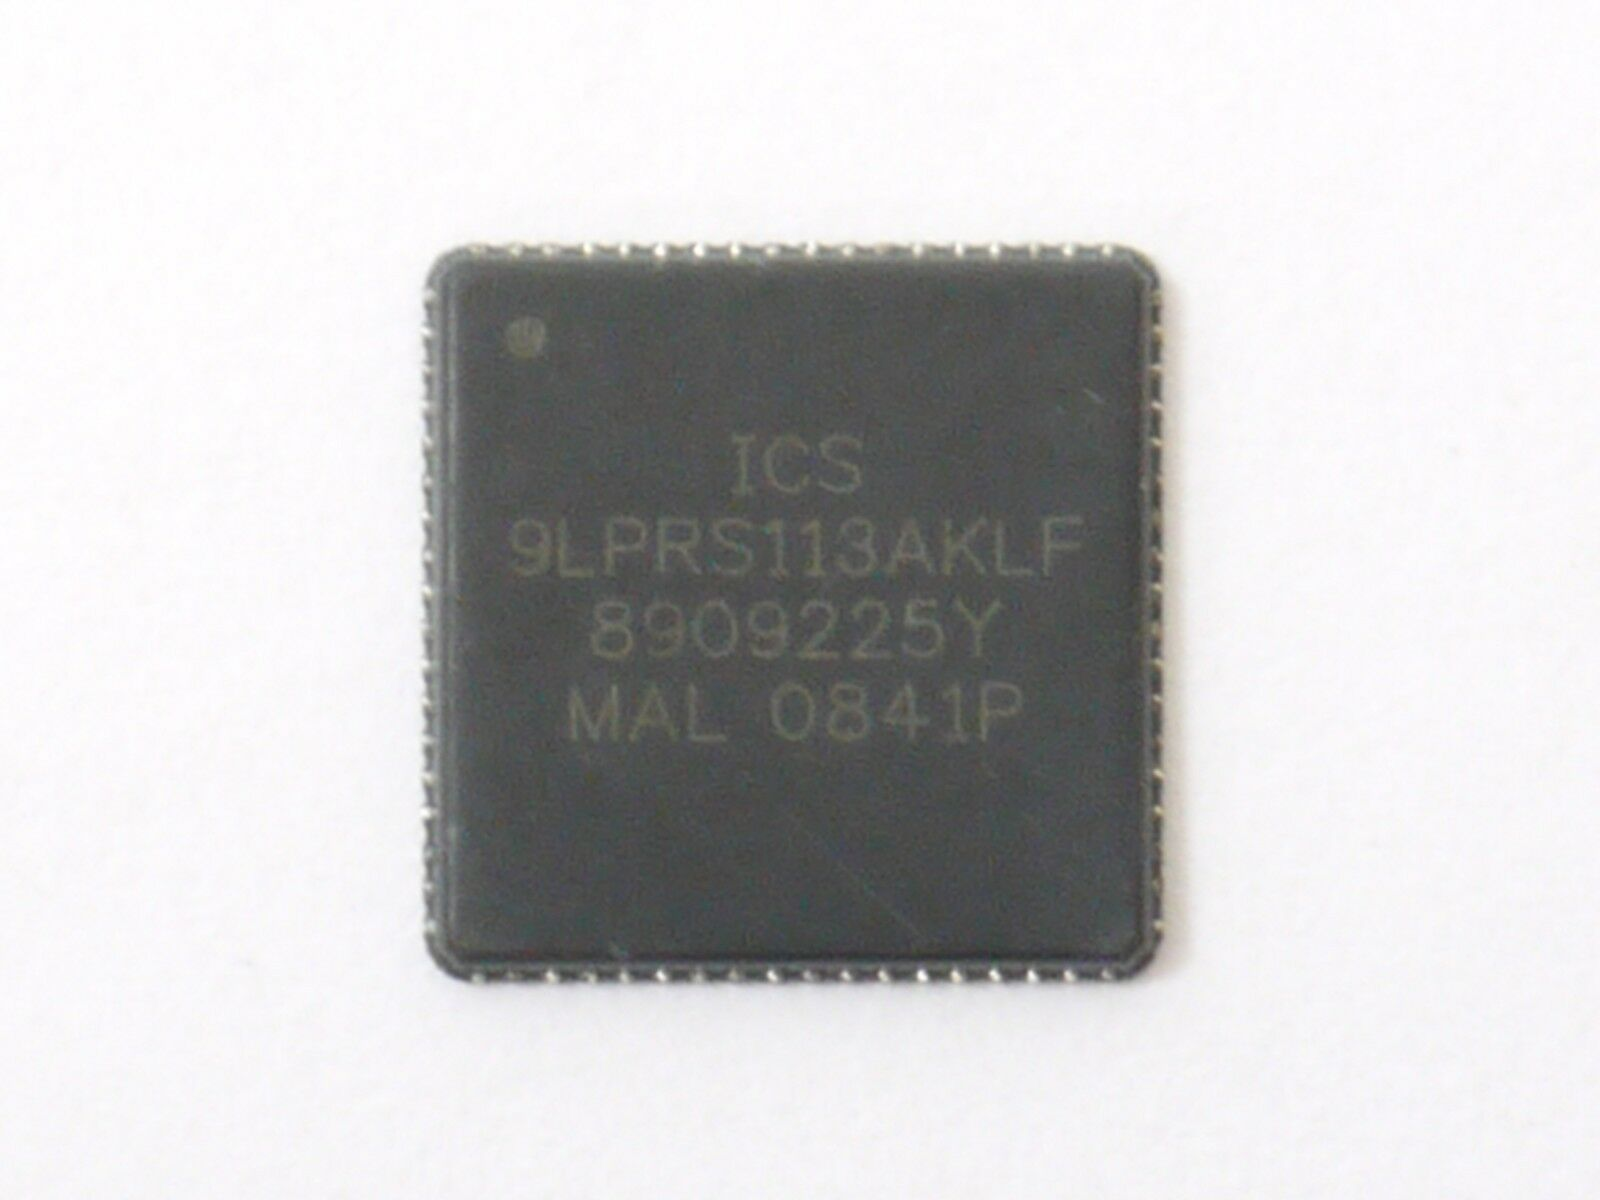 5 Pcs 9lprs113aklf 9lprs 113aklf Qfn Power Ic Chip Chipset Ebay Lm358nlow Dual Operational Amplifiers Norton Secured Powered By Verisign